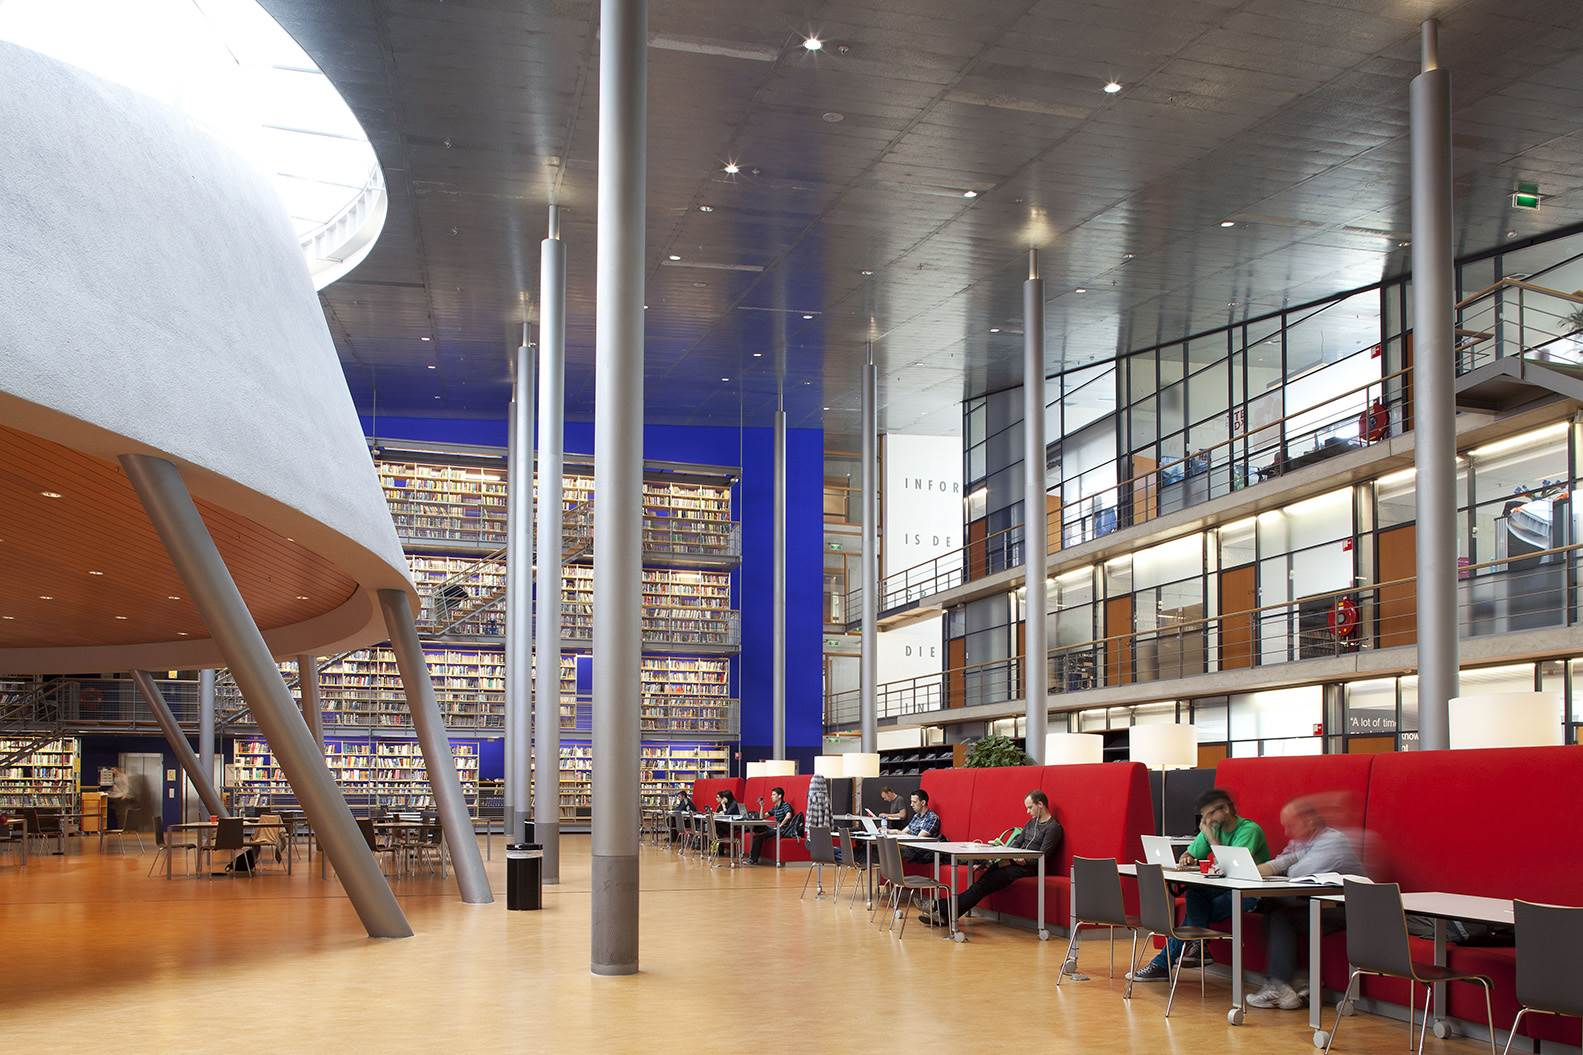 Library Delft University of Technology